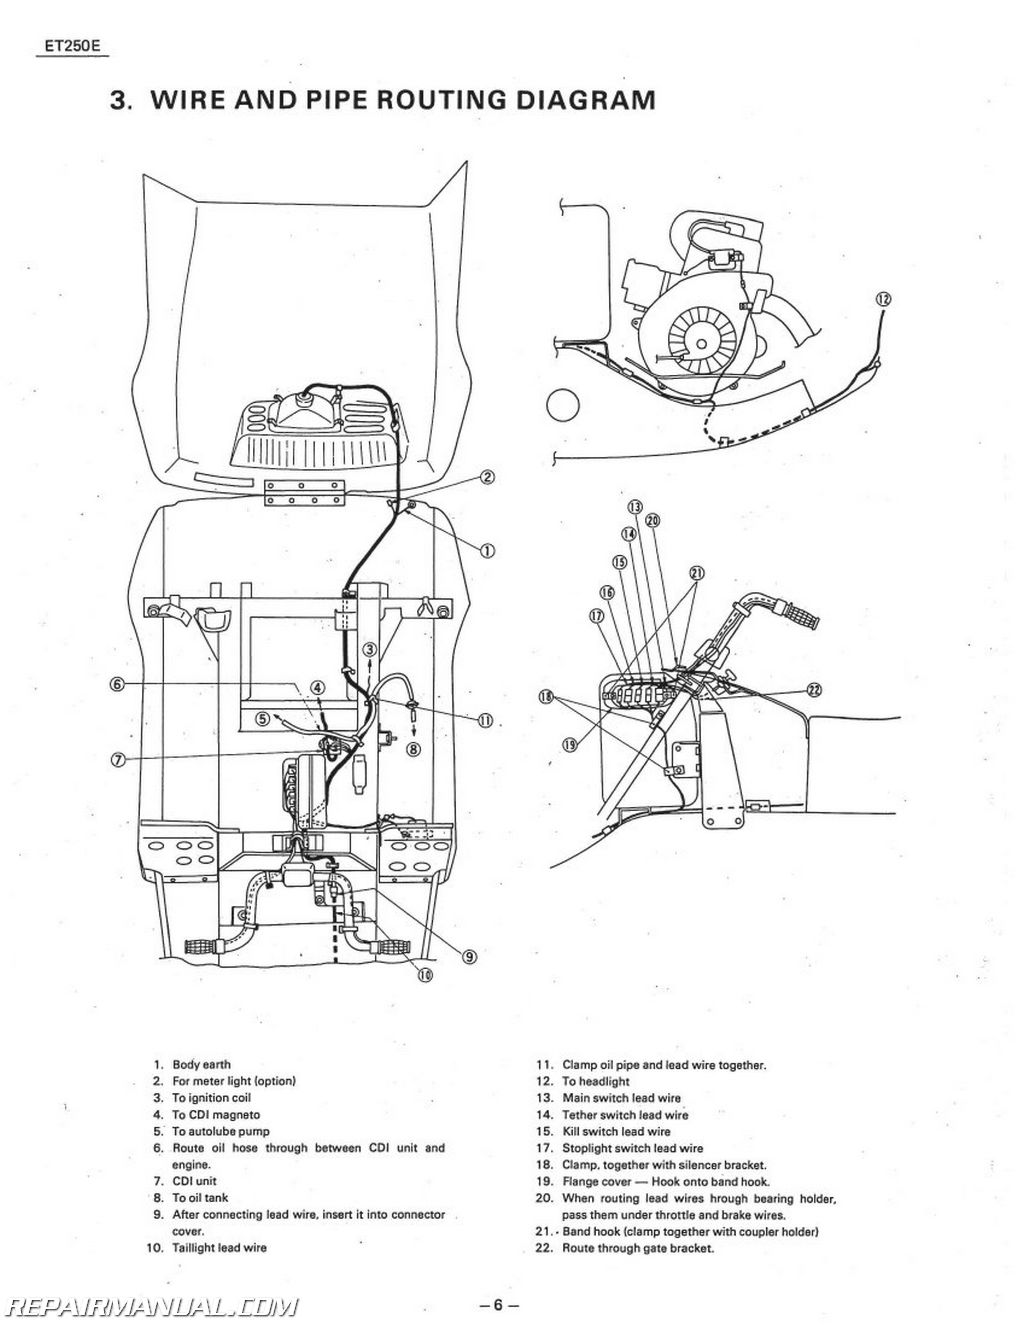 Et 250 Wiring Diagram Data Yamaha Dt 175 1978 1981 Enticer Et250 Snowmobile Service Manual Bobcat Skid Steer